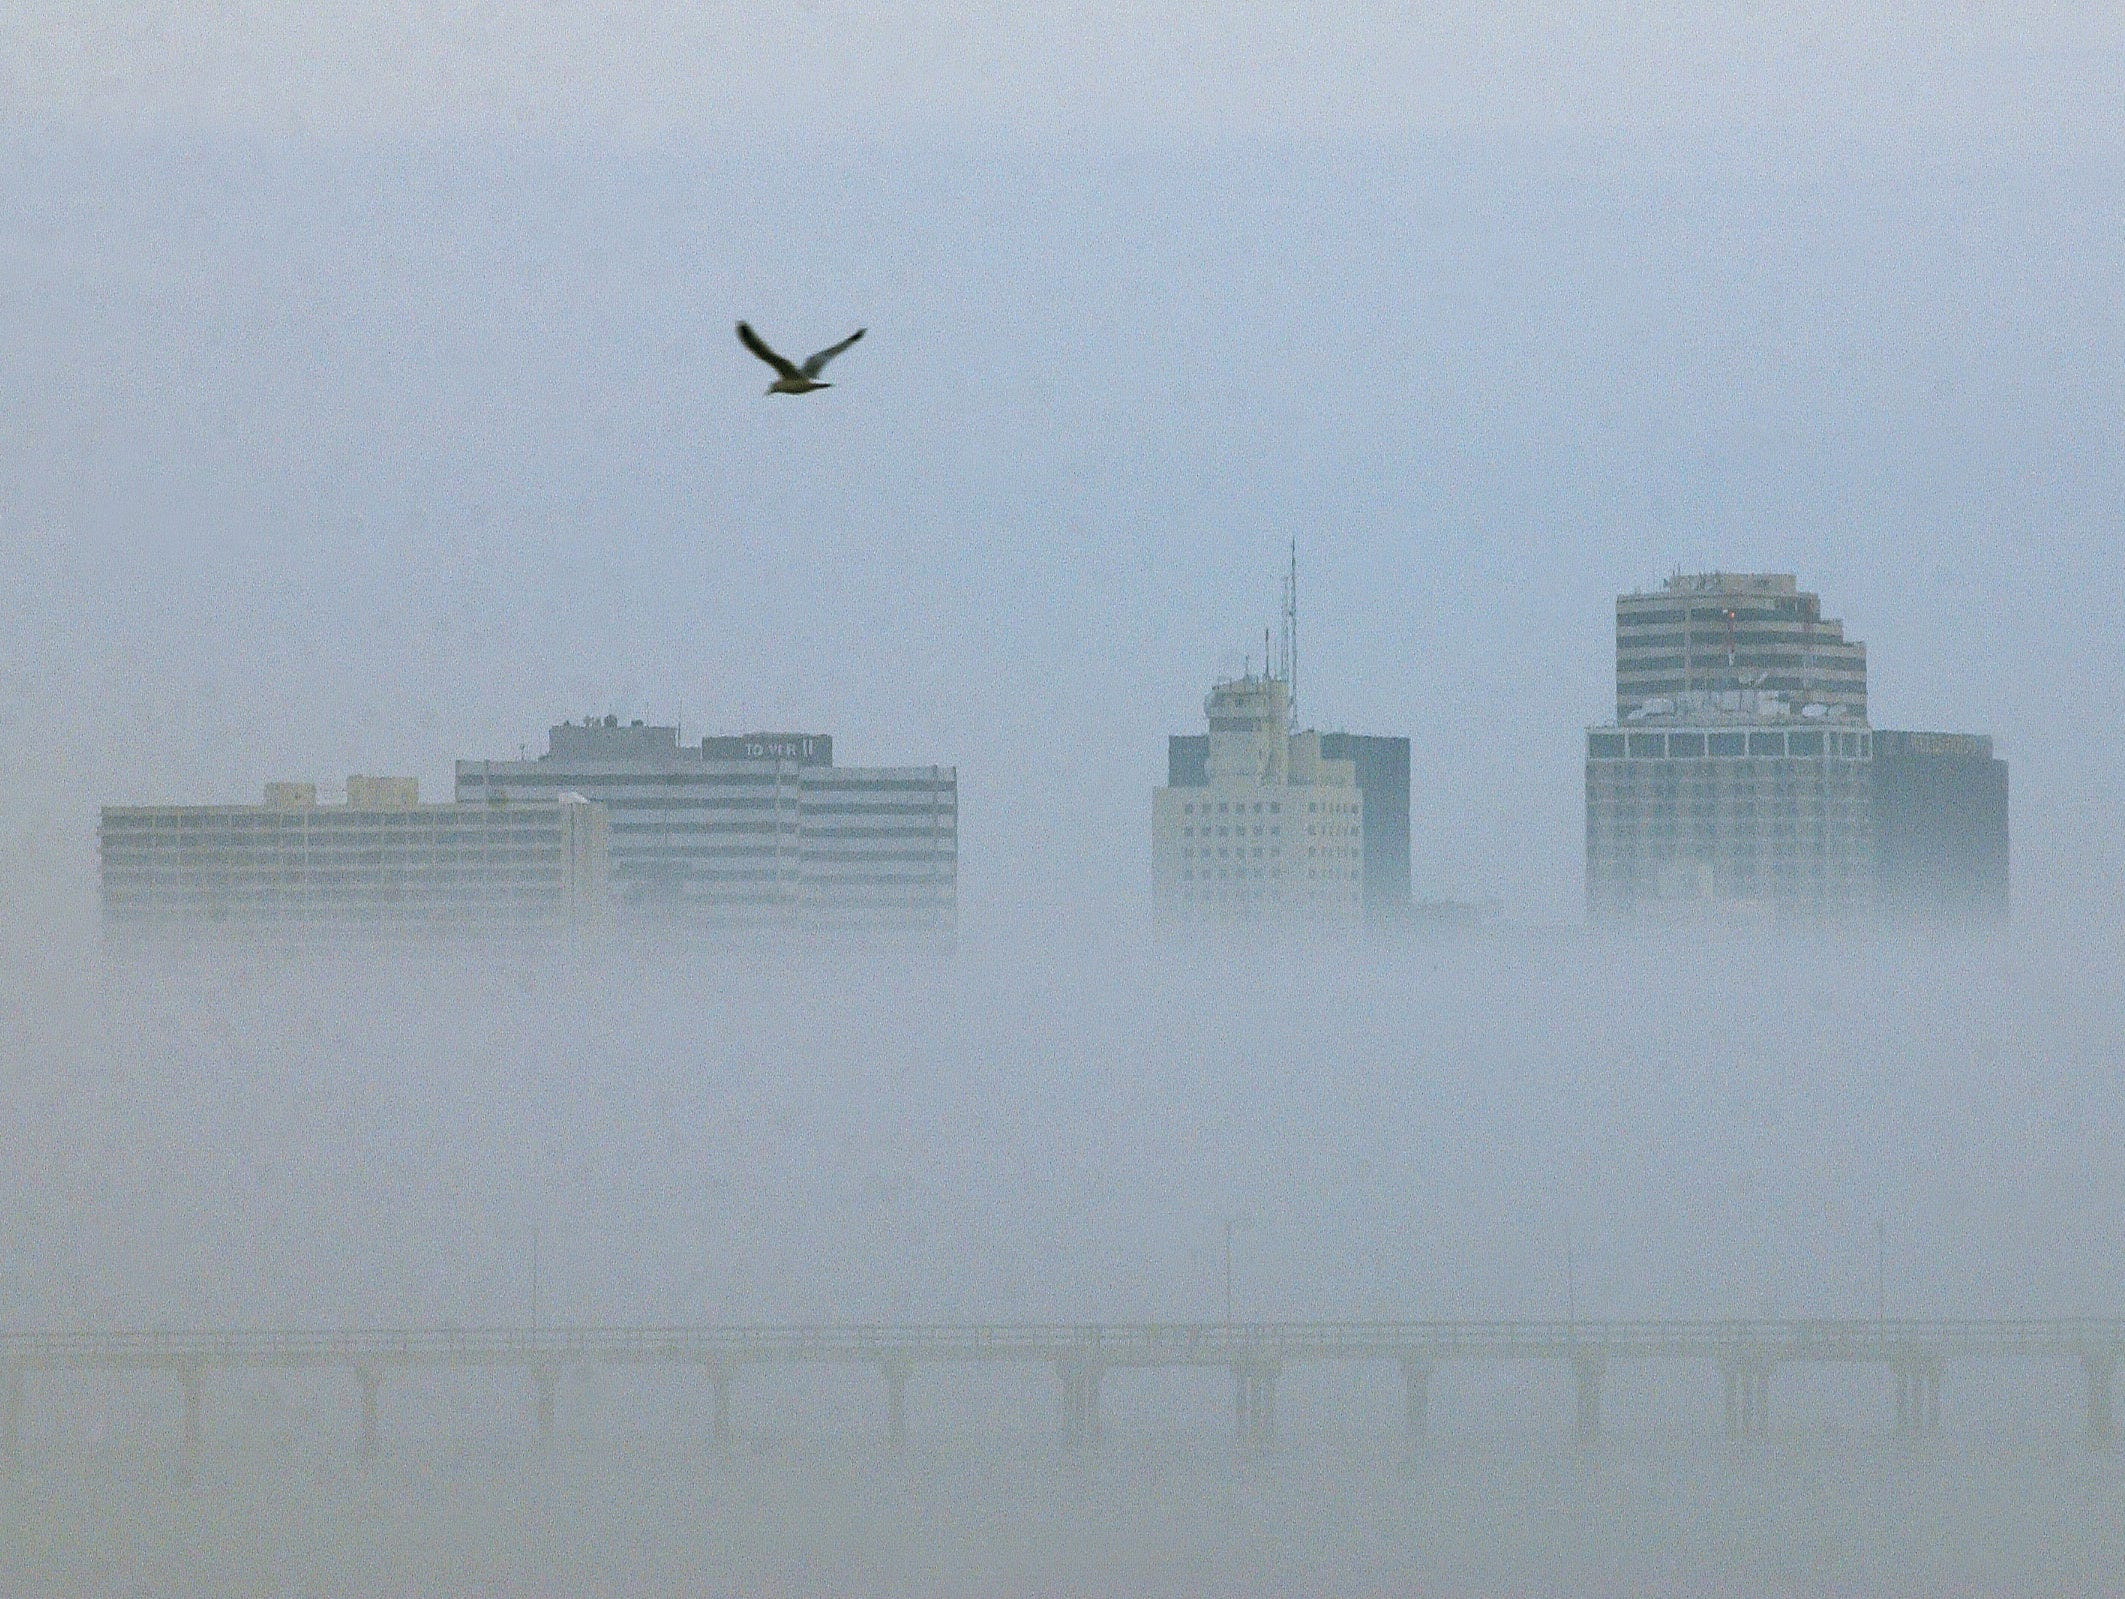 A gull flying over Corpus Christi Bay, in the heavy fog which was over the downtown area Dec. 3, 2002.